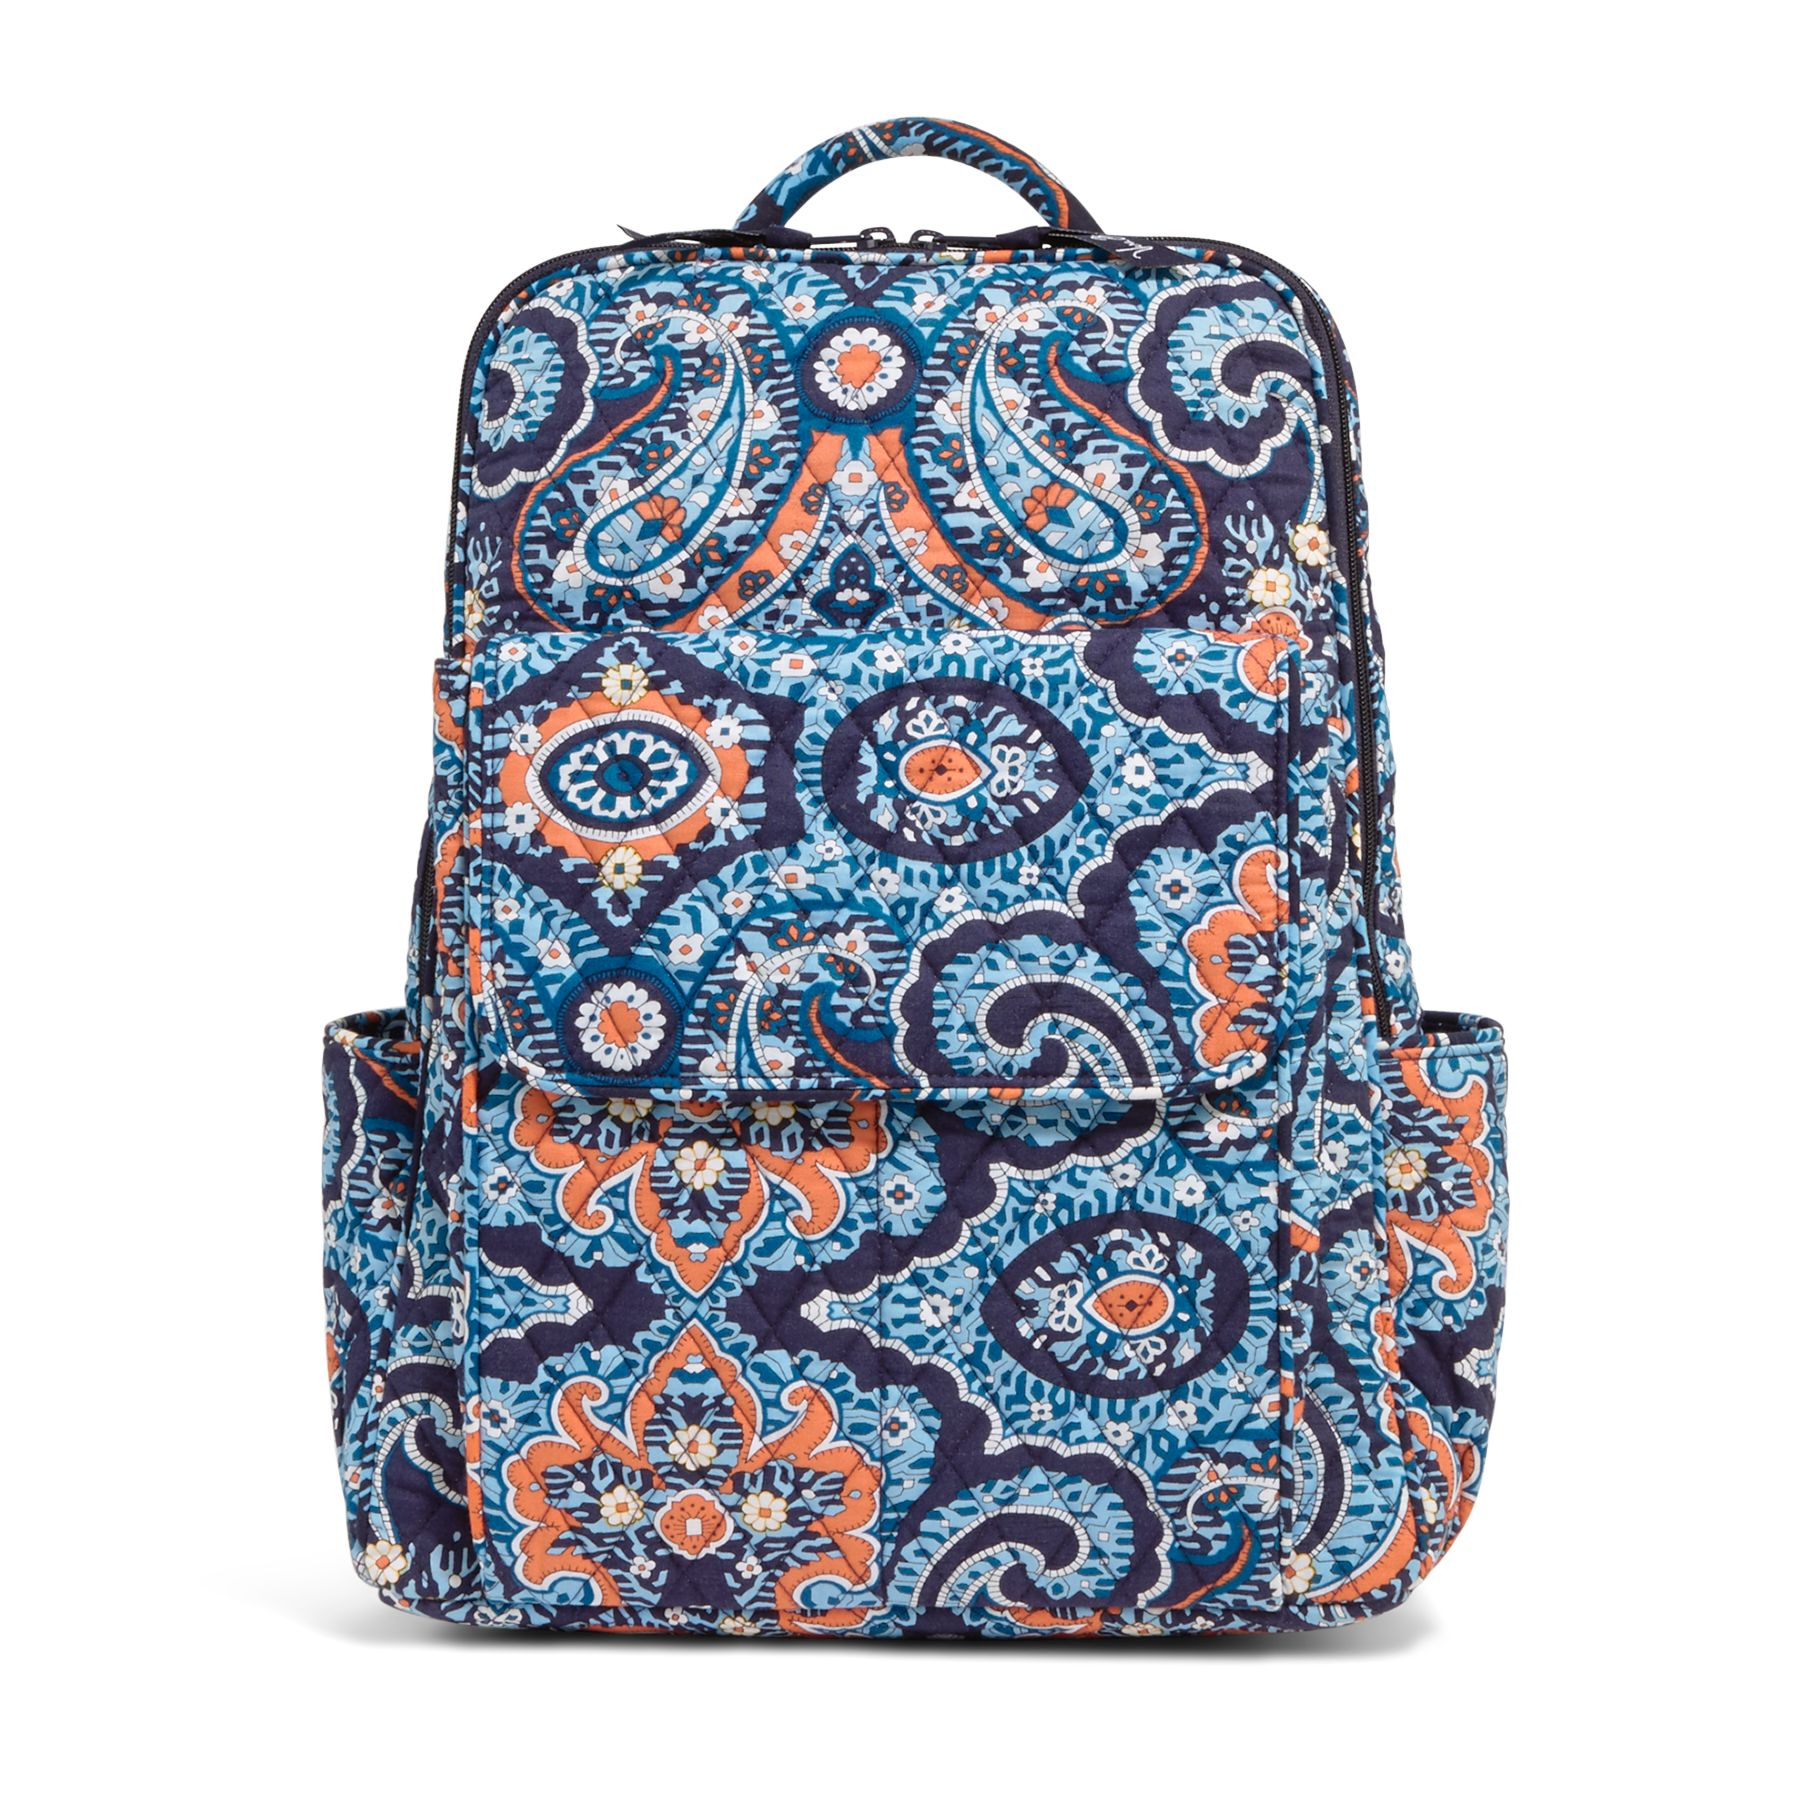 Vera Bradley Ultimate Backpack in Marrakesh